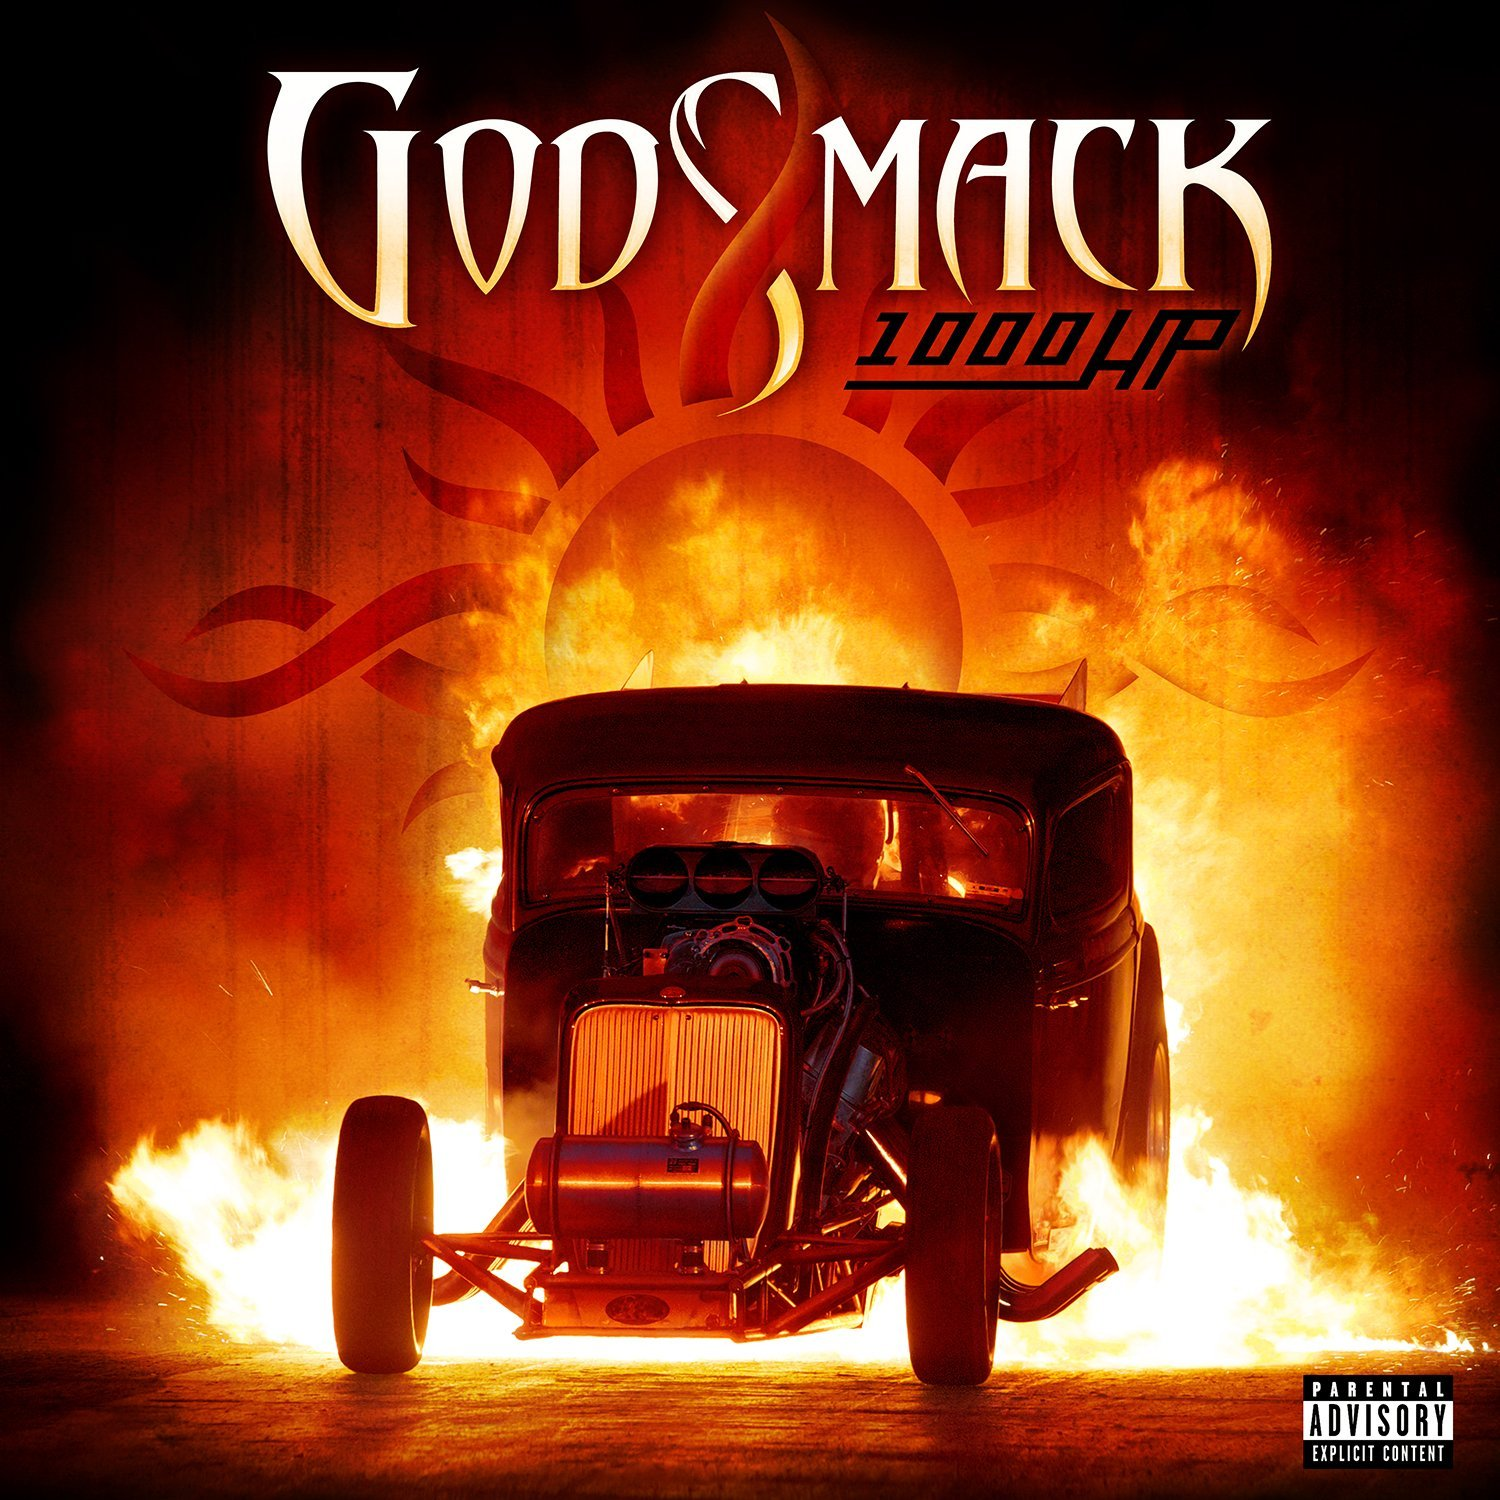 Godsmack Delivers Solid, If Unexceptional Effort On '1000hp'